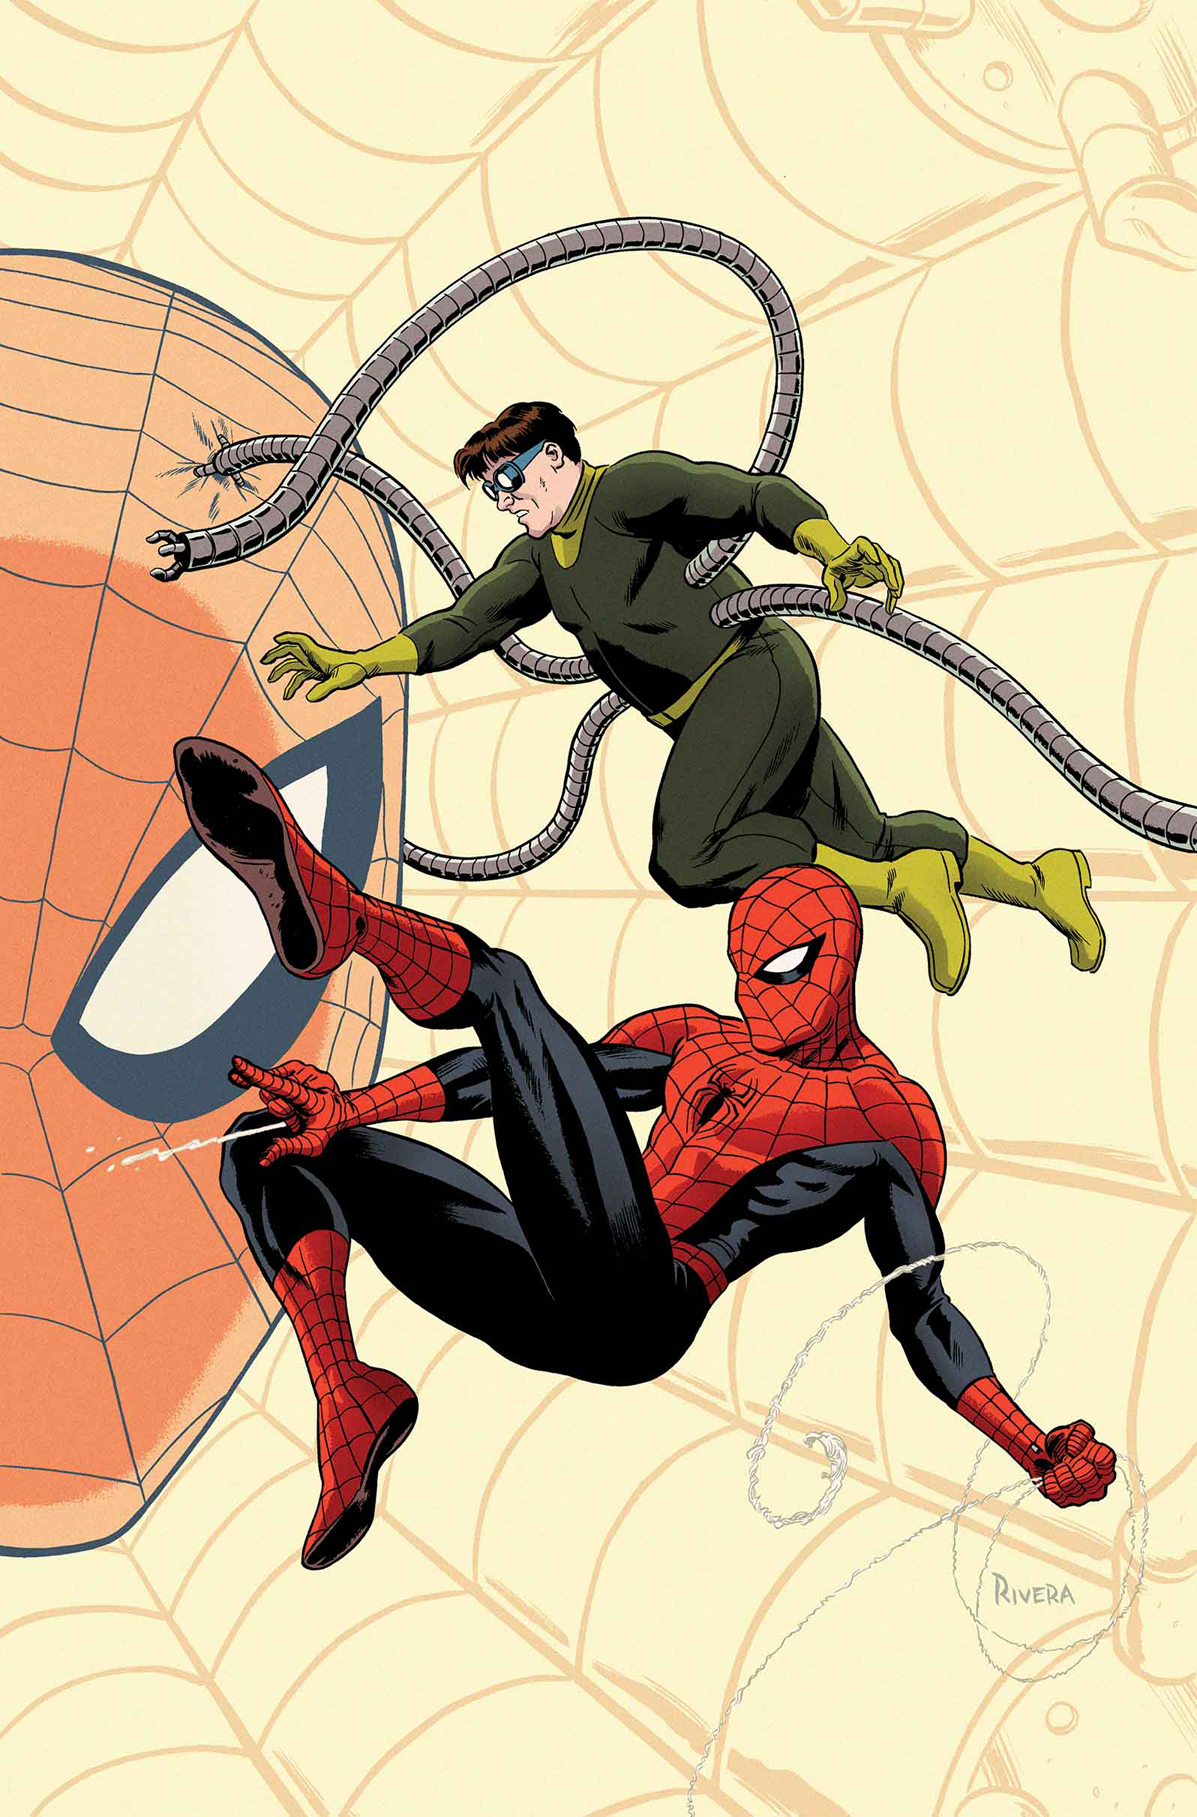 SUPERIOR SPIDER-MAN TEAM UP #12